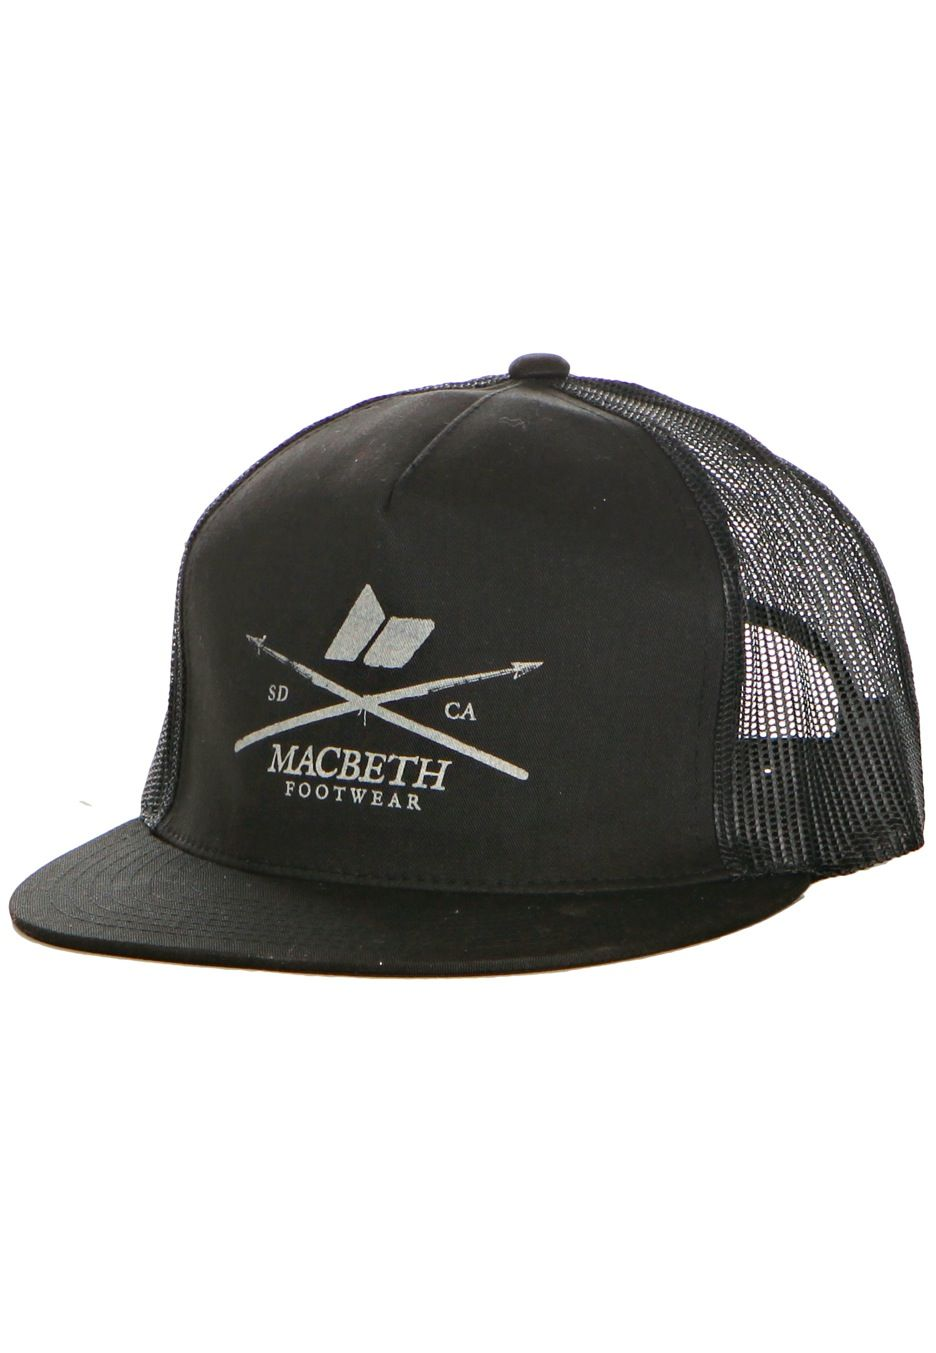 49e73a4a379e45 Trucker hat design. Macbeth Footwear Holiday11 | Macbeth | Hats, Cap ...